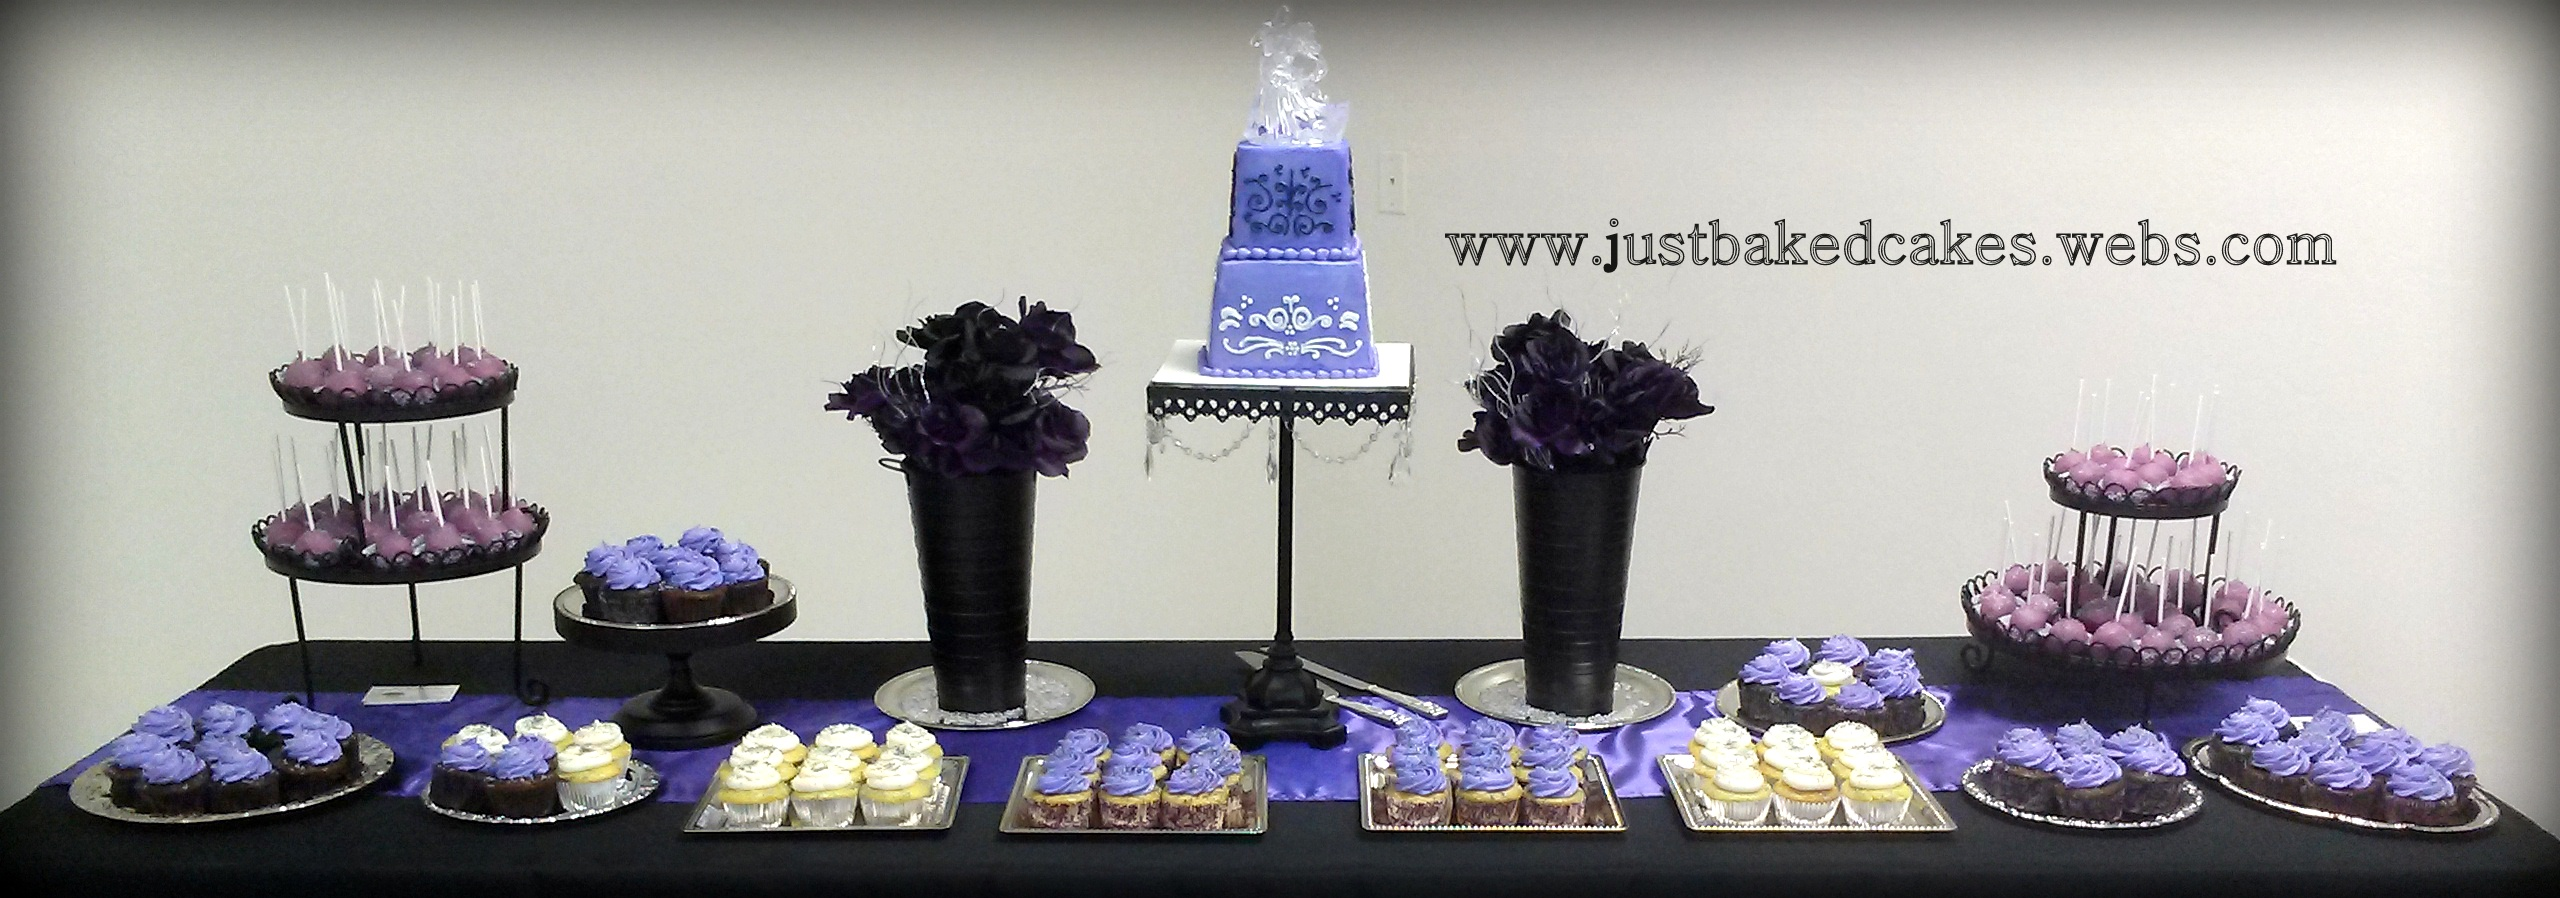 Purple themed wedding dessert table